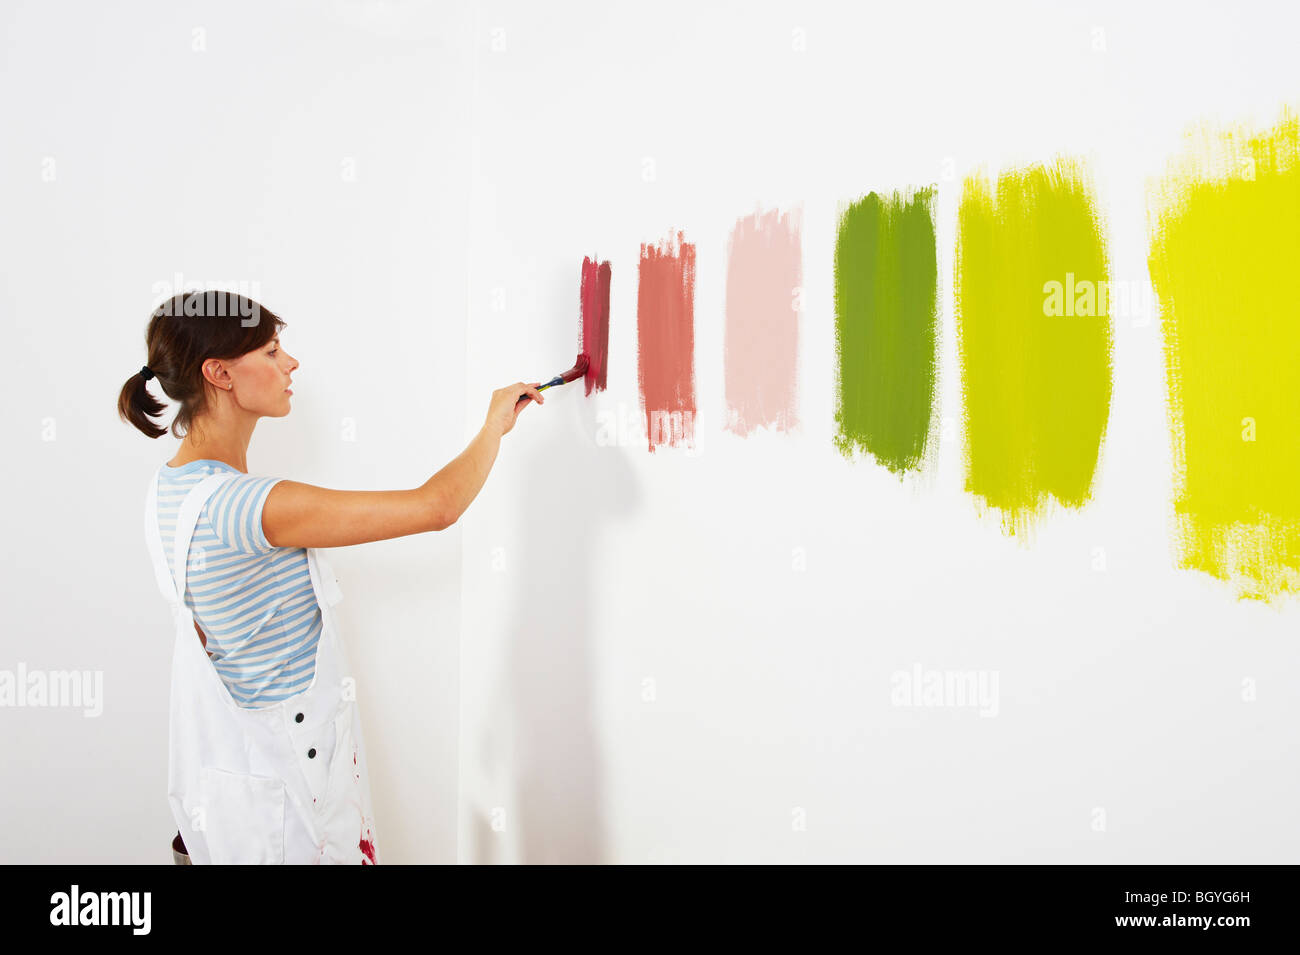 Woman painting colour swatches on wall - Stock Image